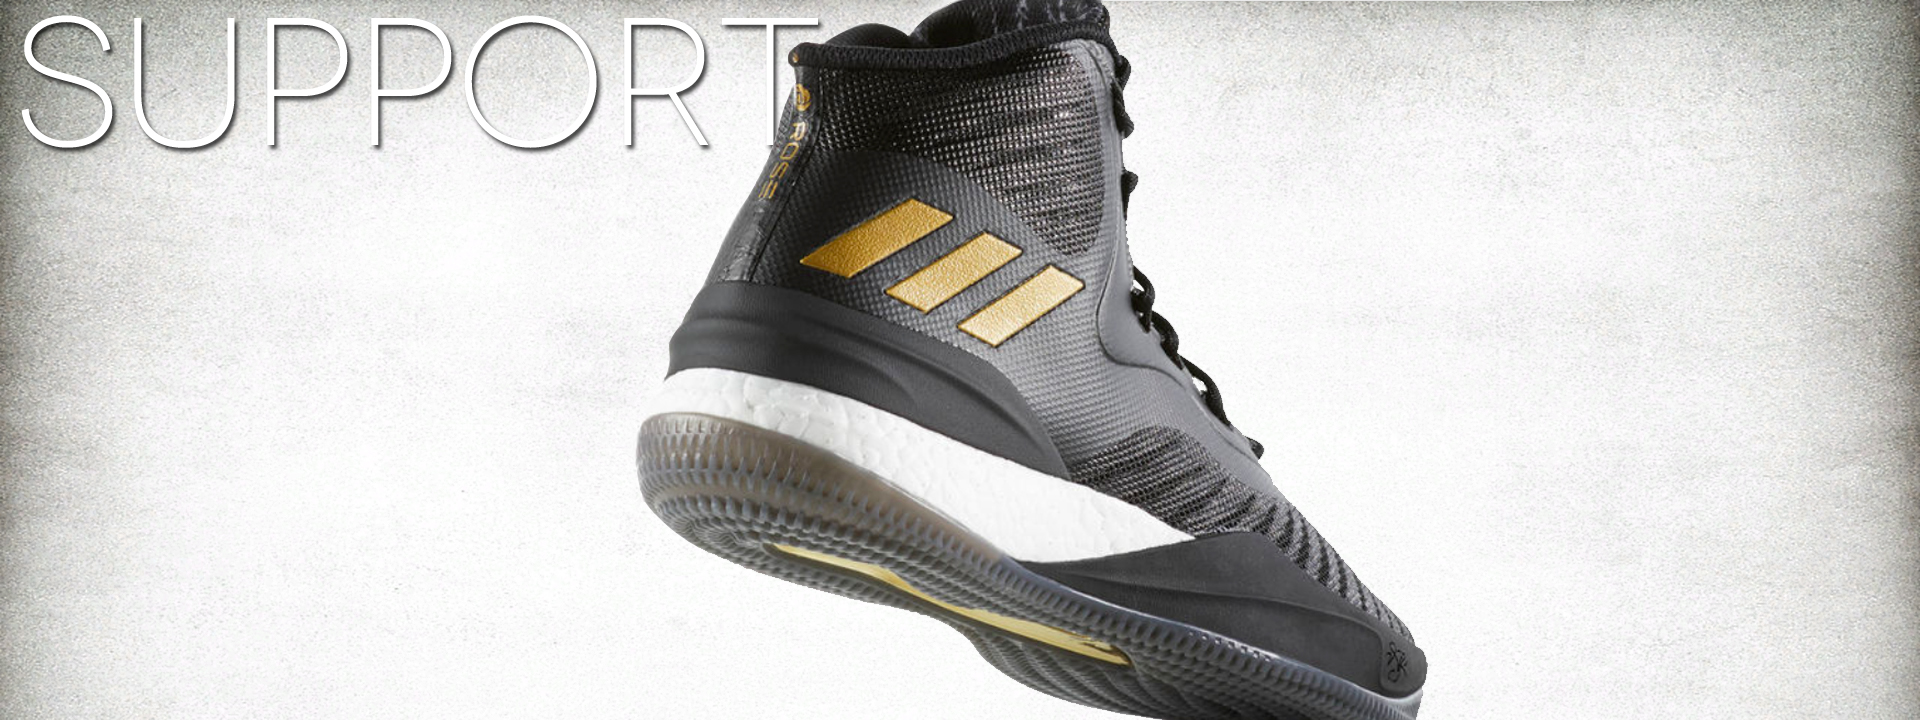 adidas d rose 8 performance review support